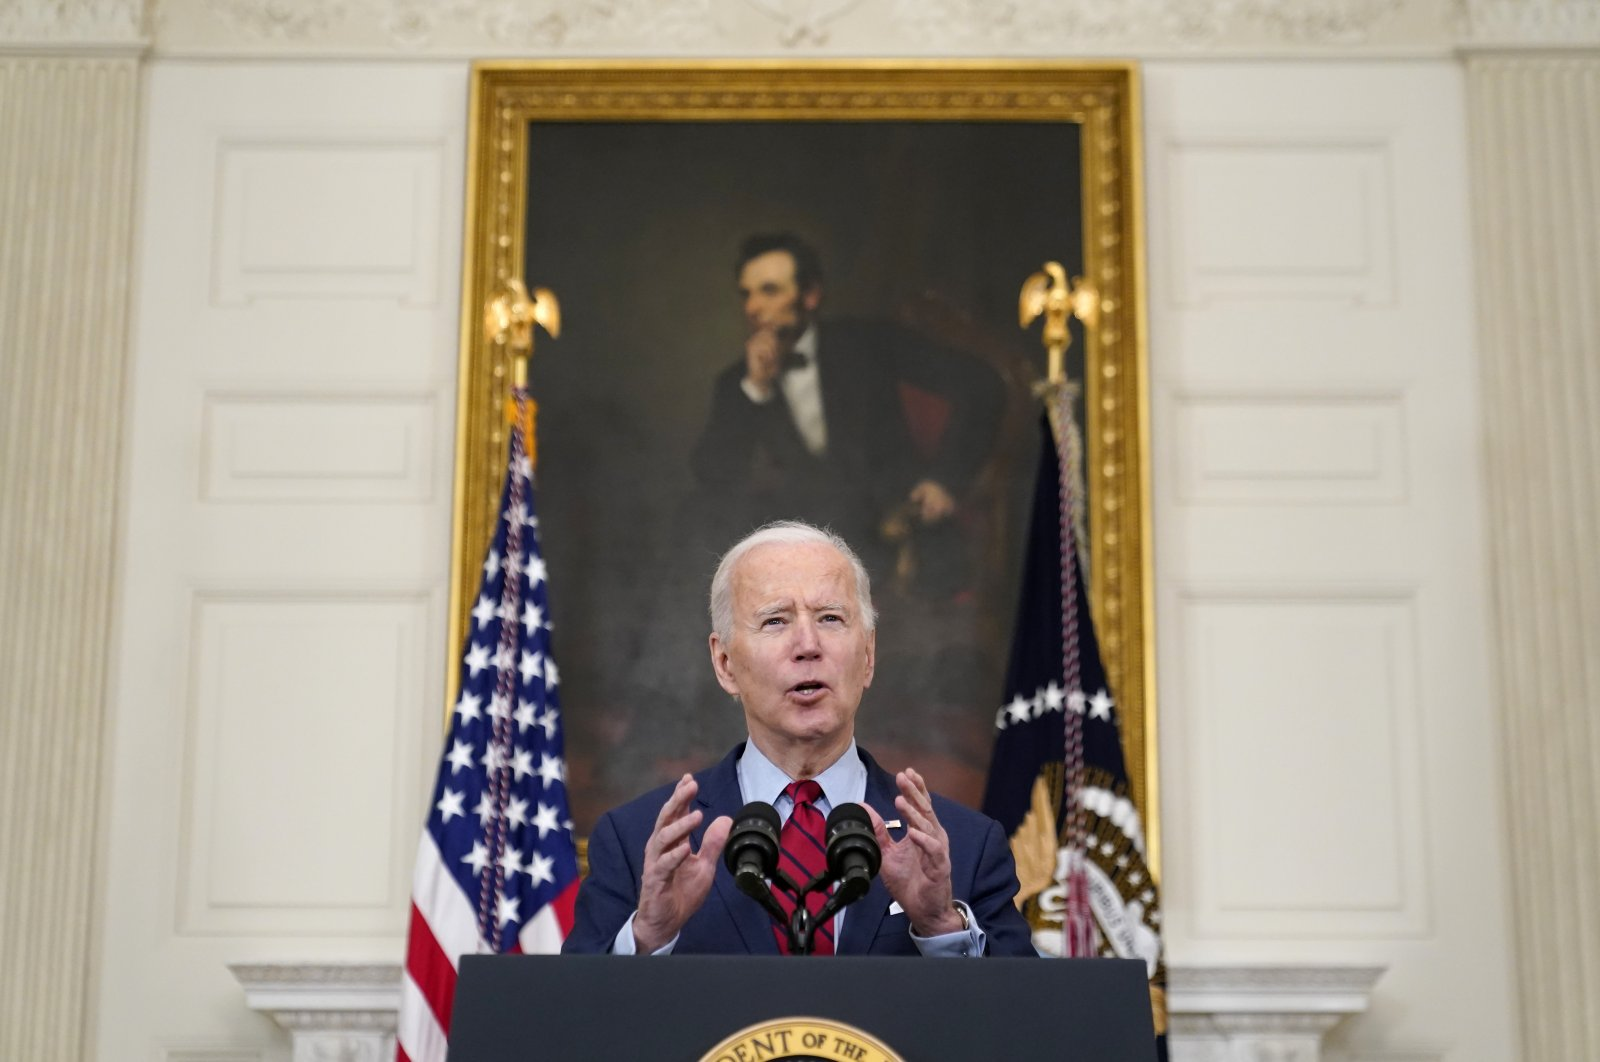 U.S. President Joe Biden speaks about the shooting in Boulder, Colorado, Tuesday, March 23, 2021, in the State Dining Room of the White House in Washington. (AP Photo)